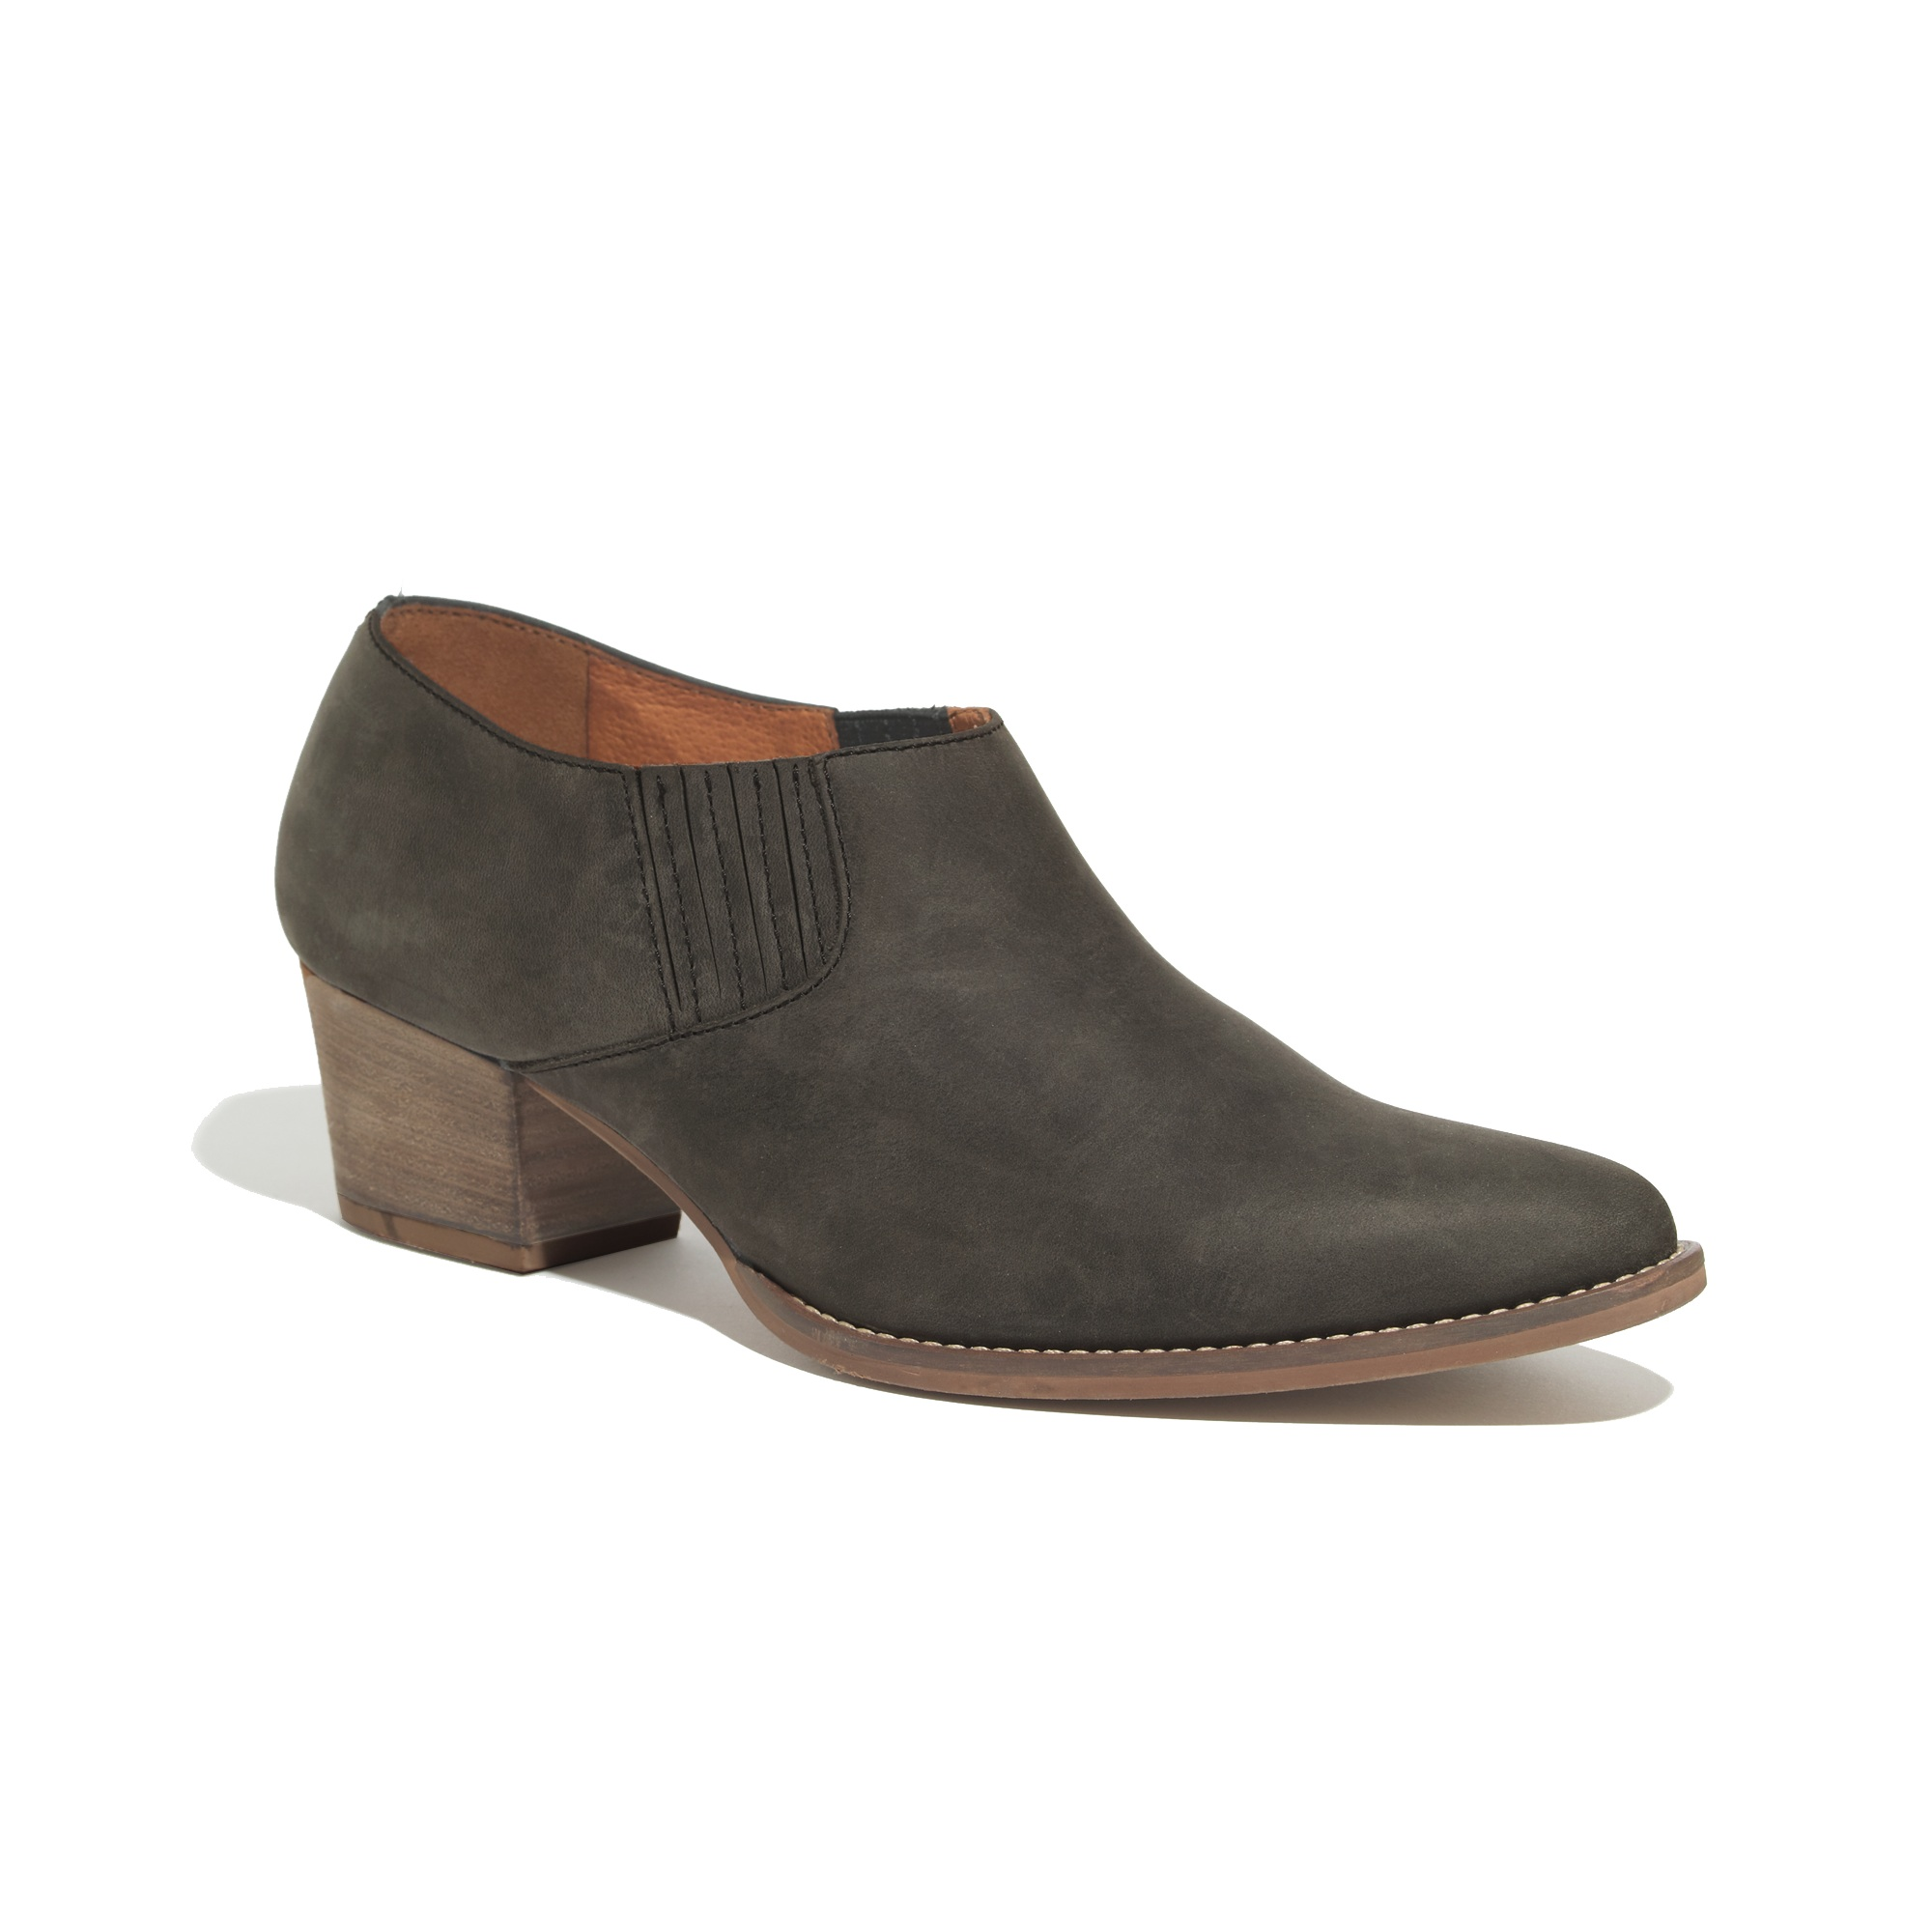 Madewell The Erin Boot ($218)